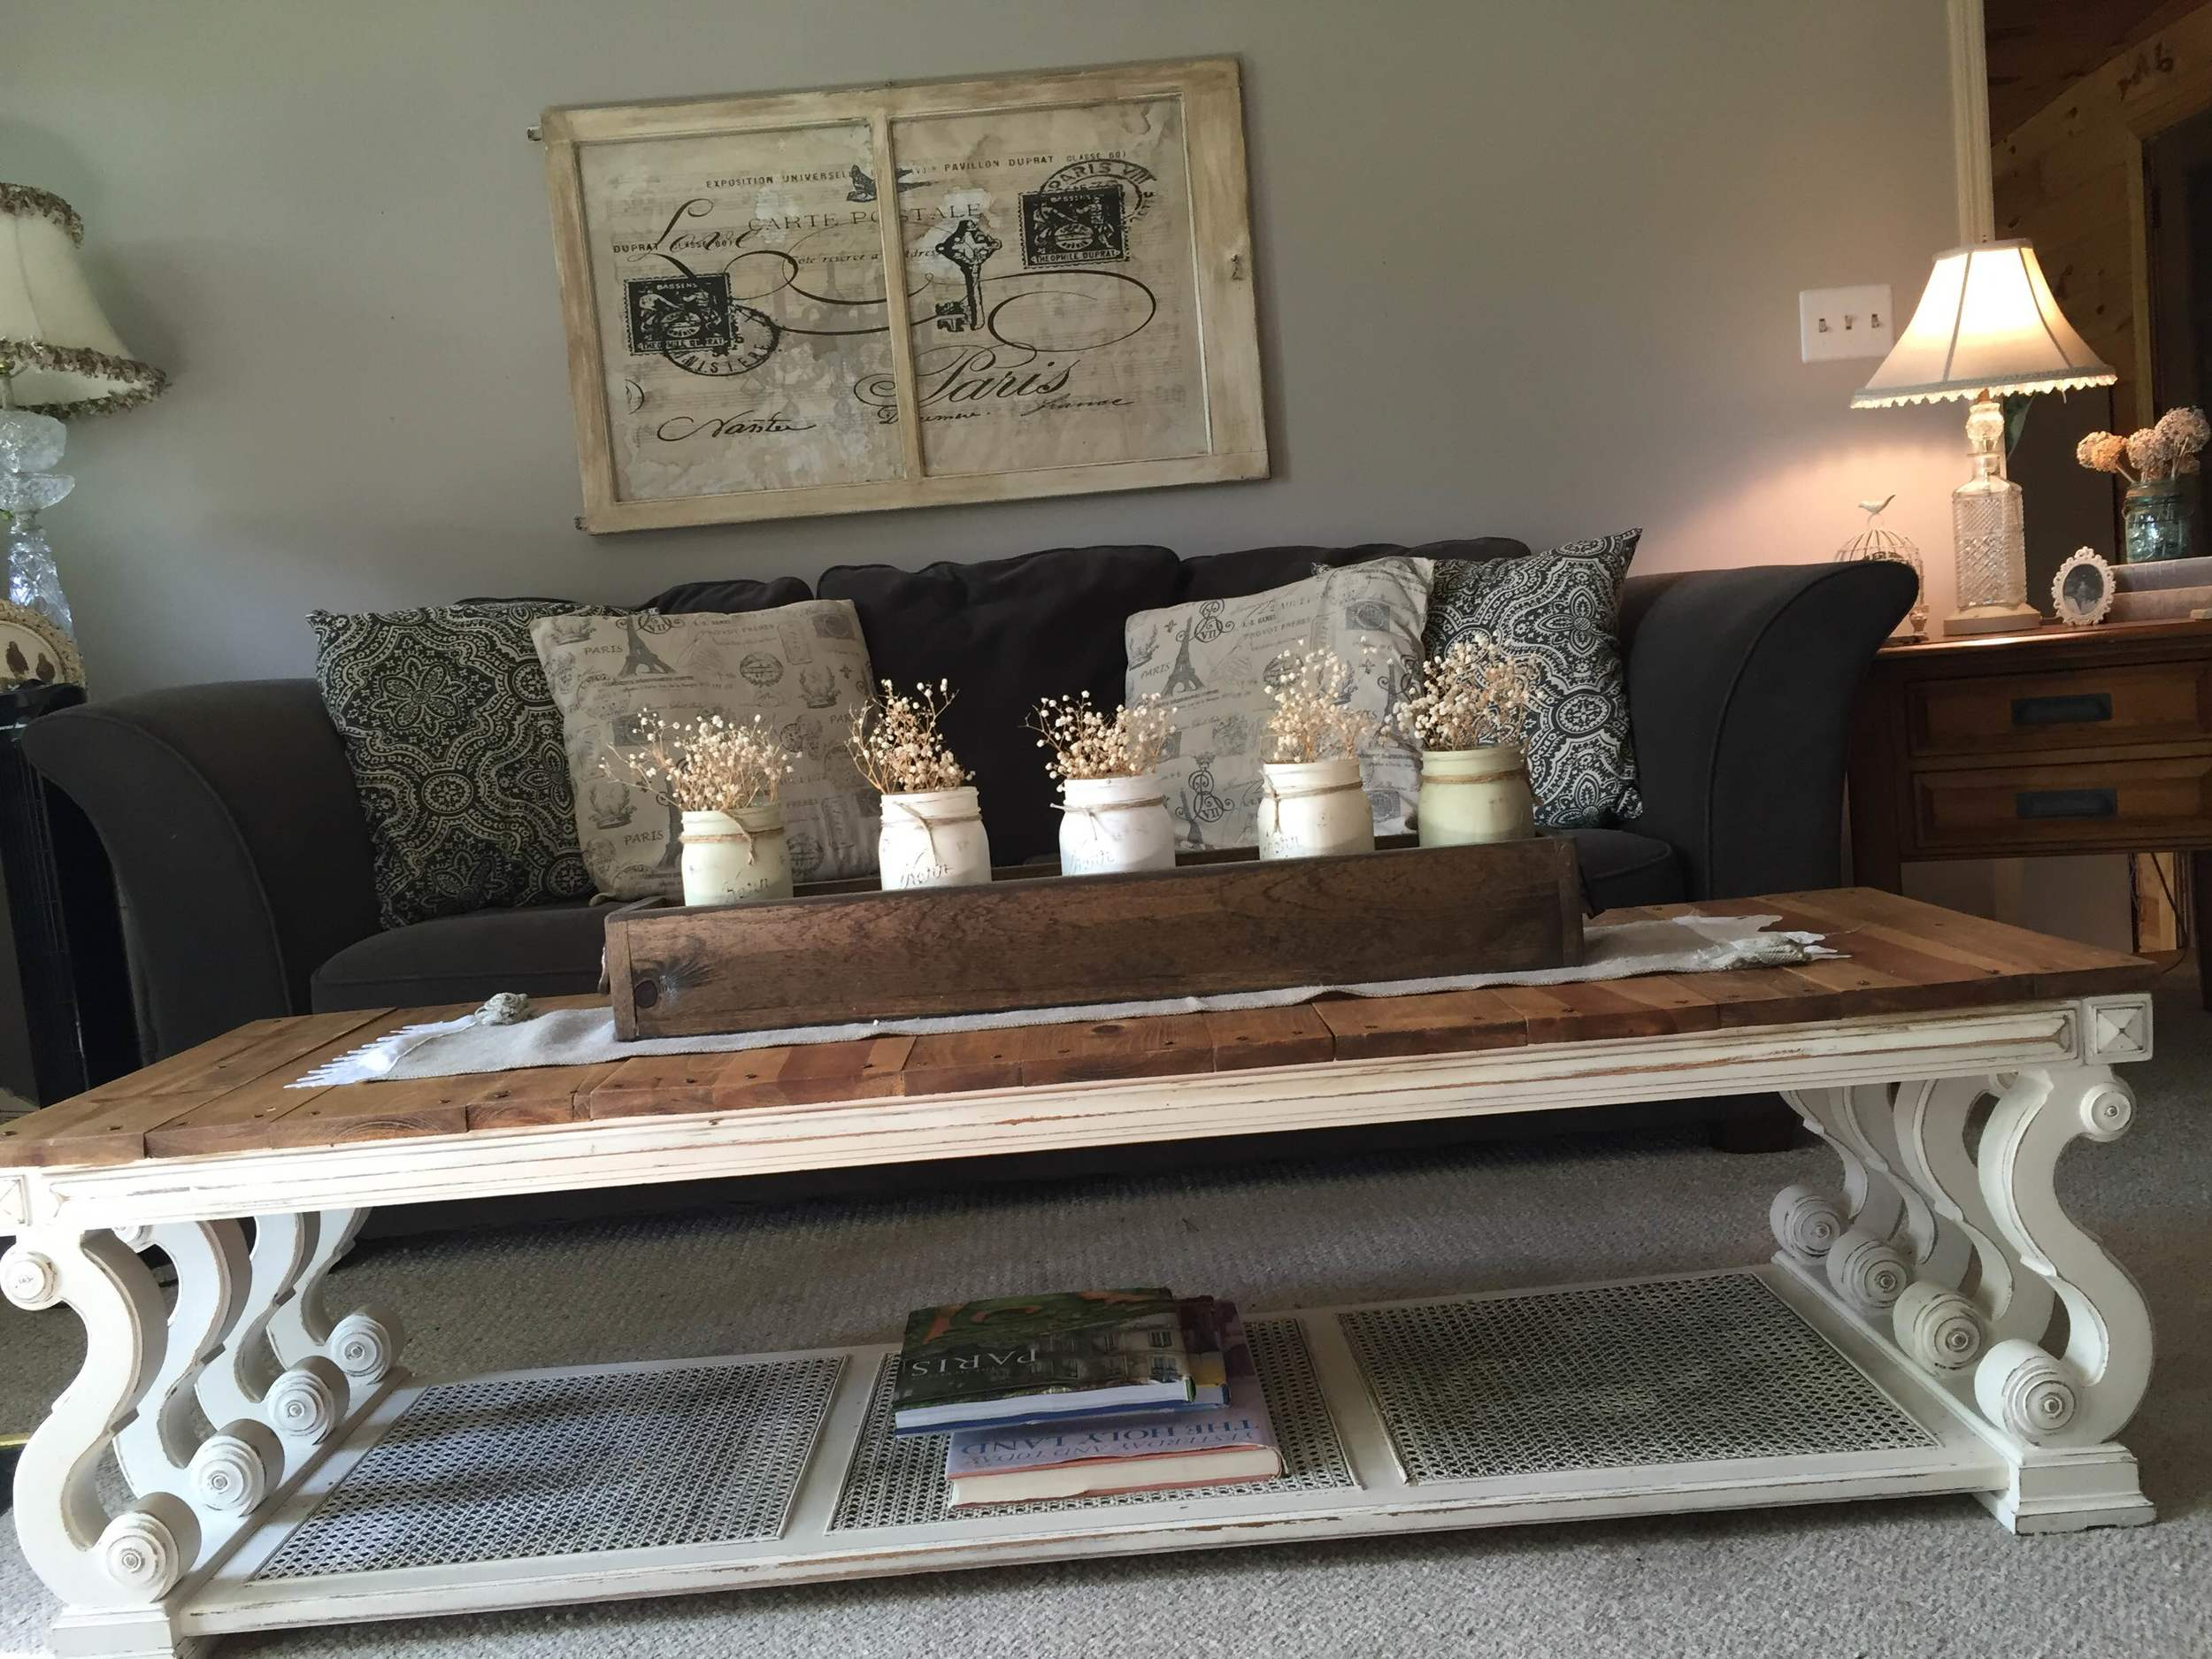 Stacey has always been a bargain hunter, she bought her couch and love seat brand new with the tags still on them at a thrift store for $165!